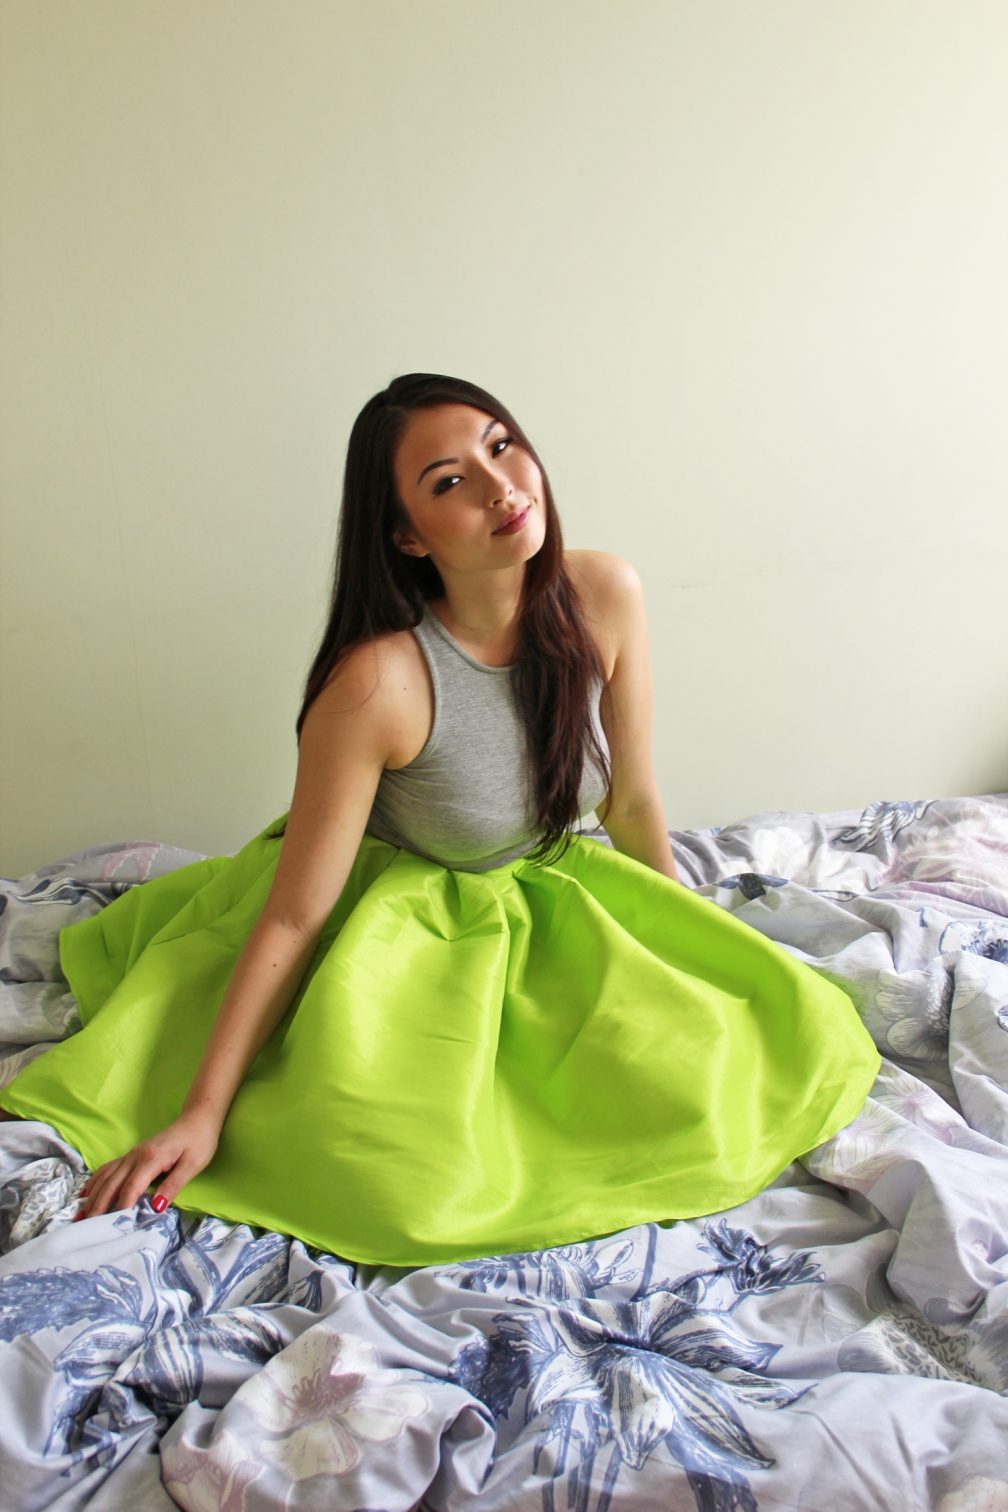 Dandy Skirt in Neon Lime. Silk polyester blend. $60